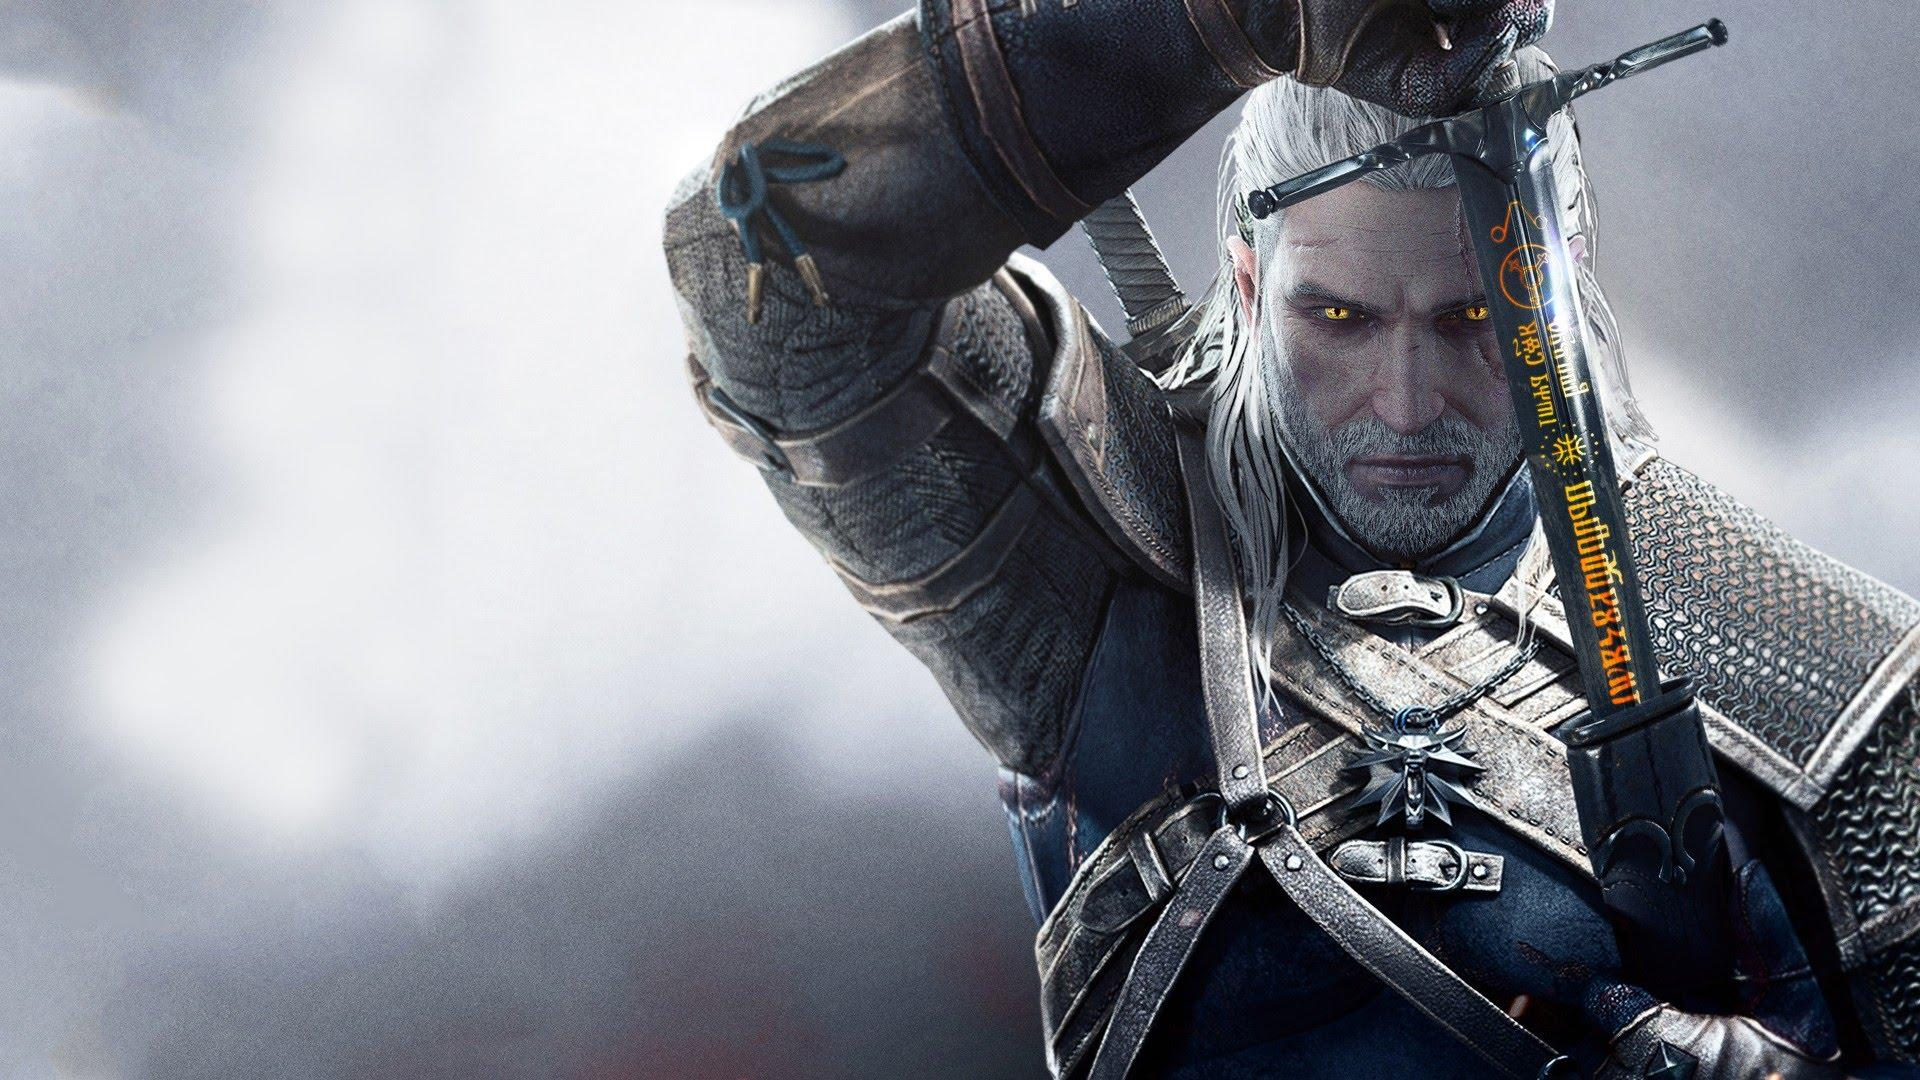 The Witcher Netflix Wallpapers - Wallpaper Cave